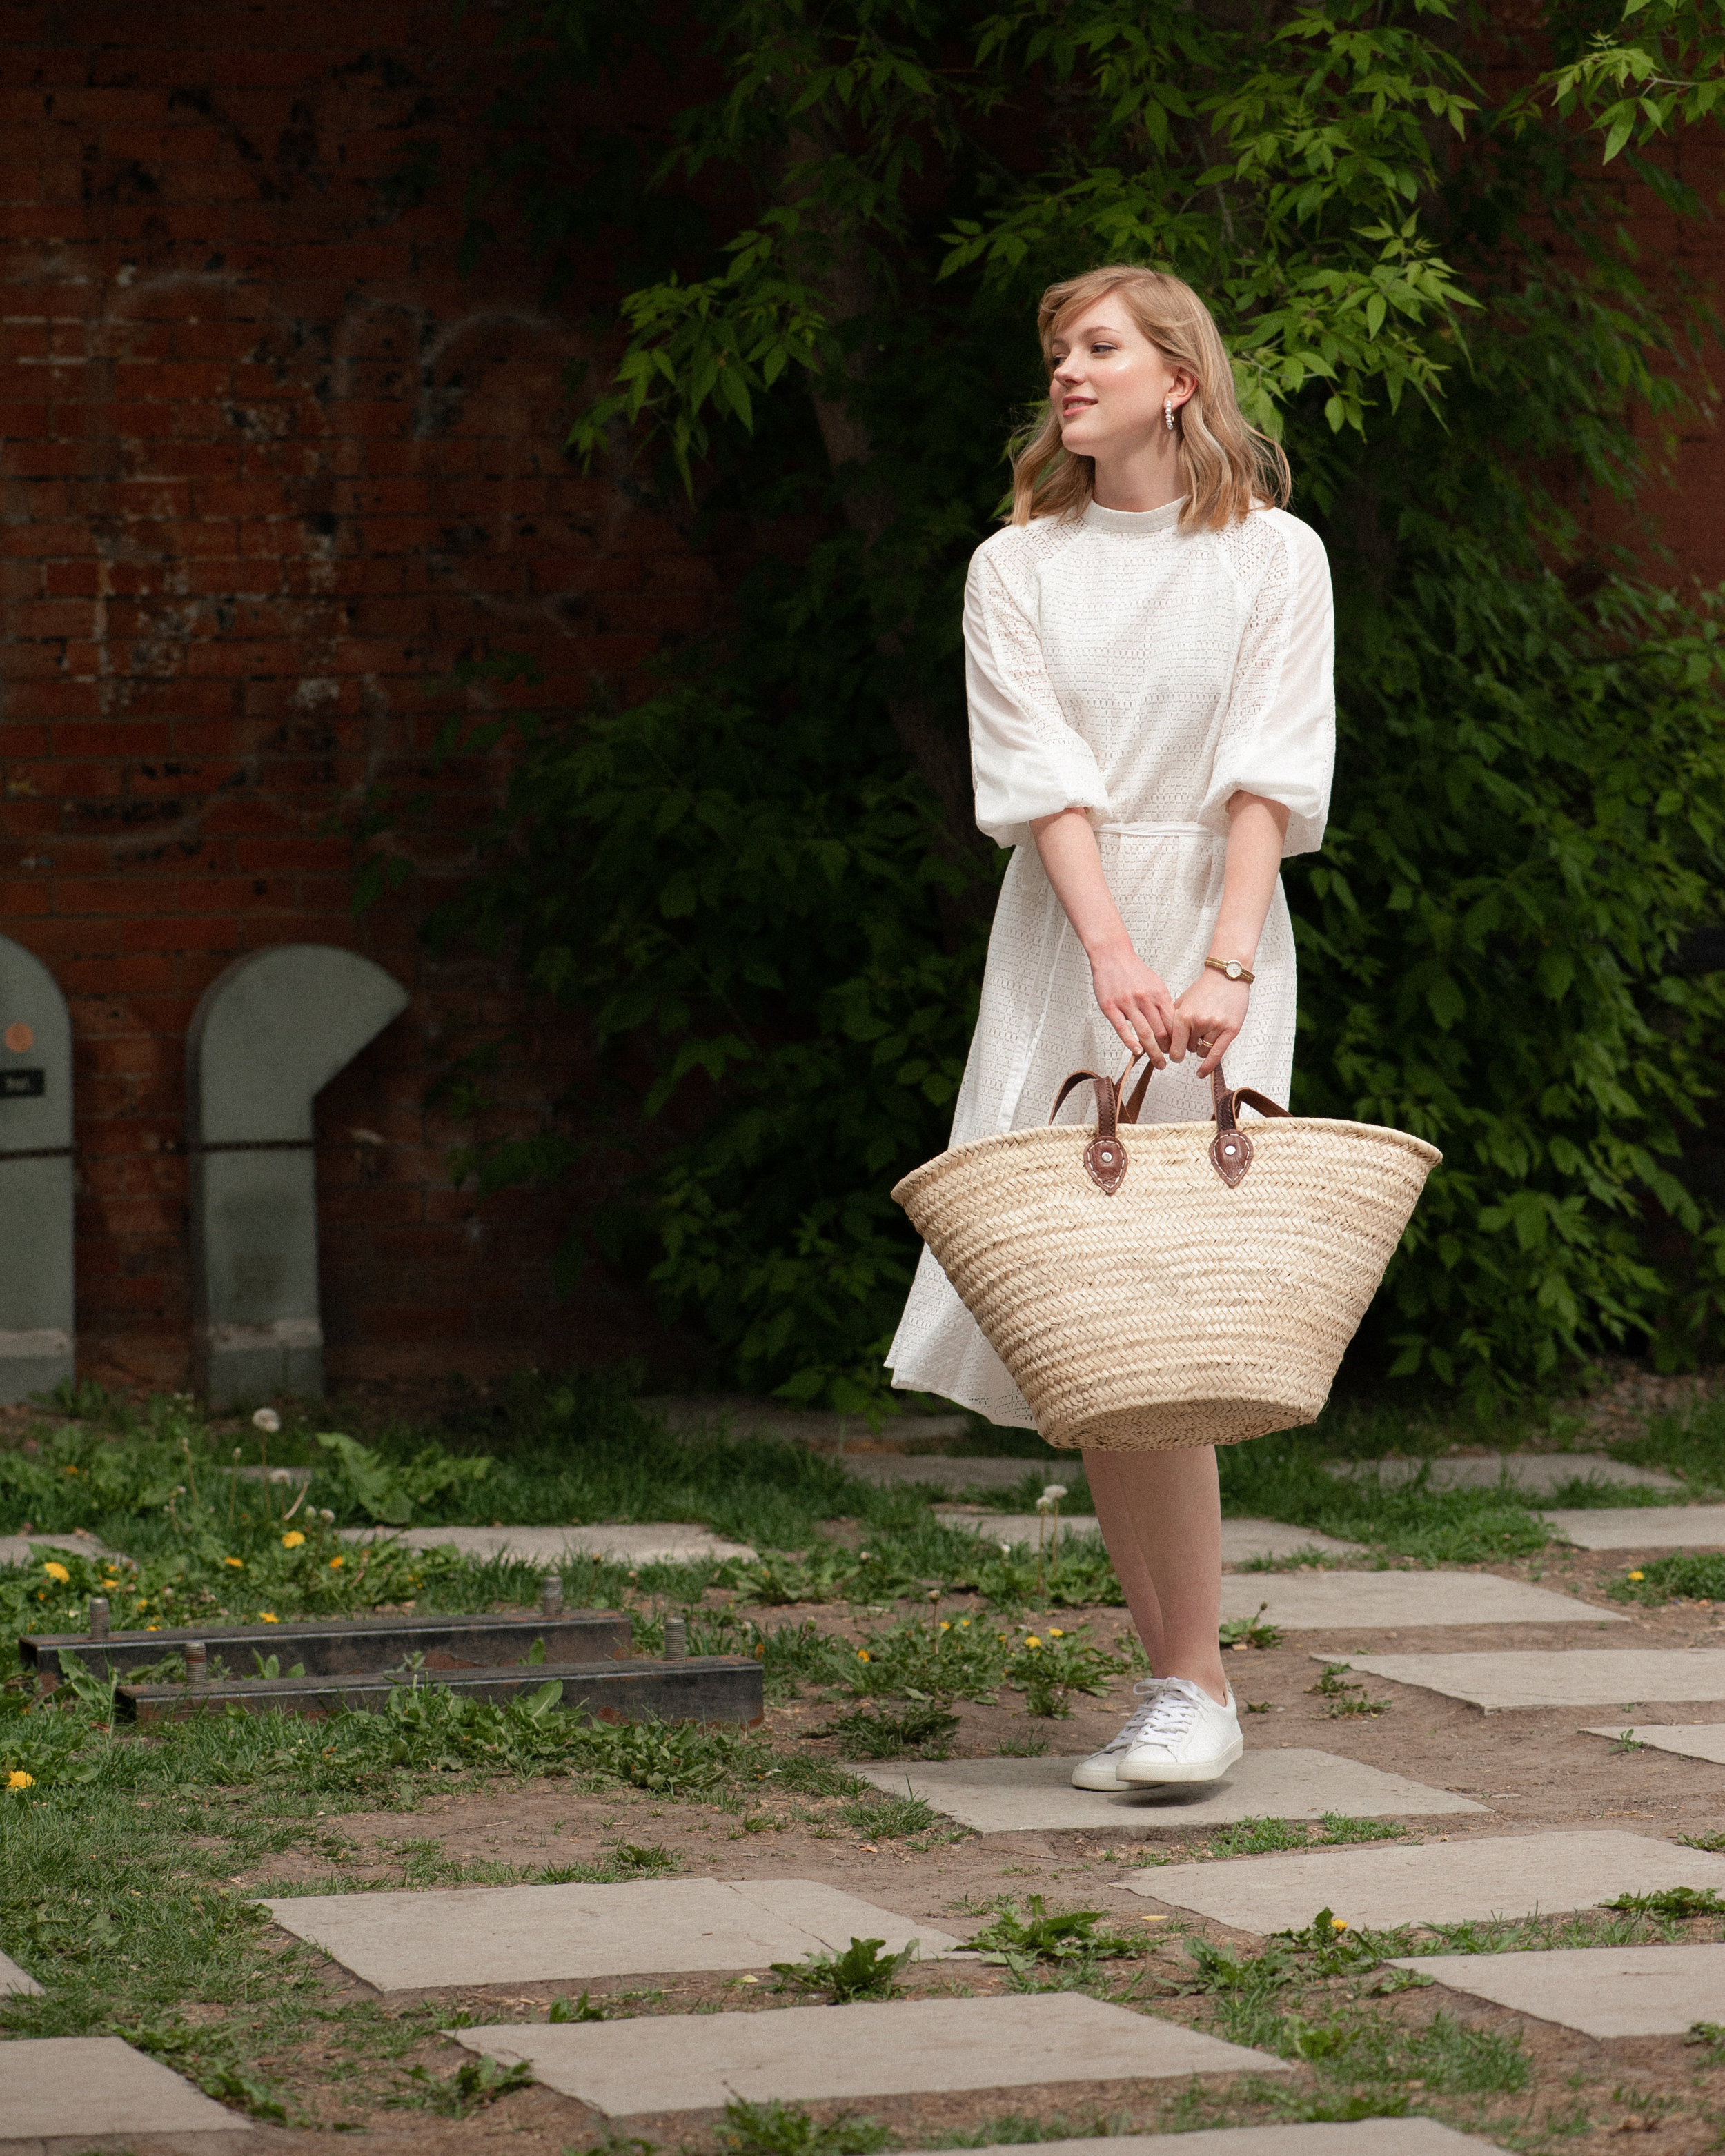 Photography by    Suzanne Nolan   . The Lyon Dress by SKYE. Bag: June Home Supply. Shoes: Veja.